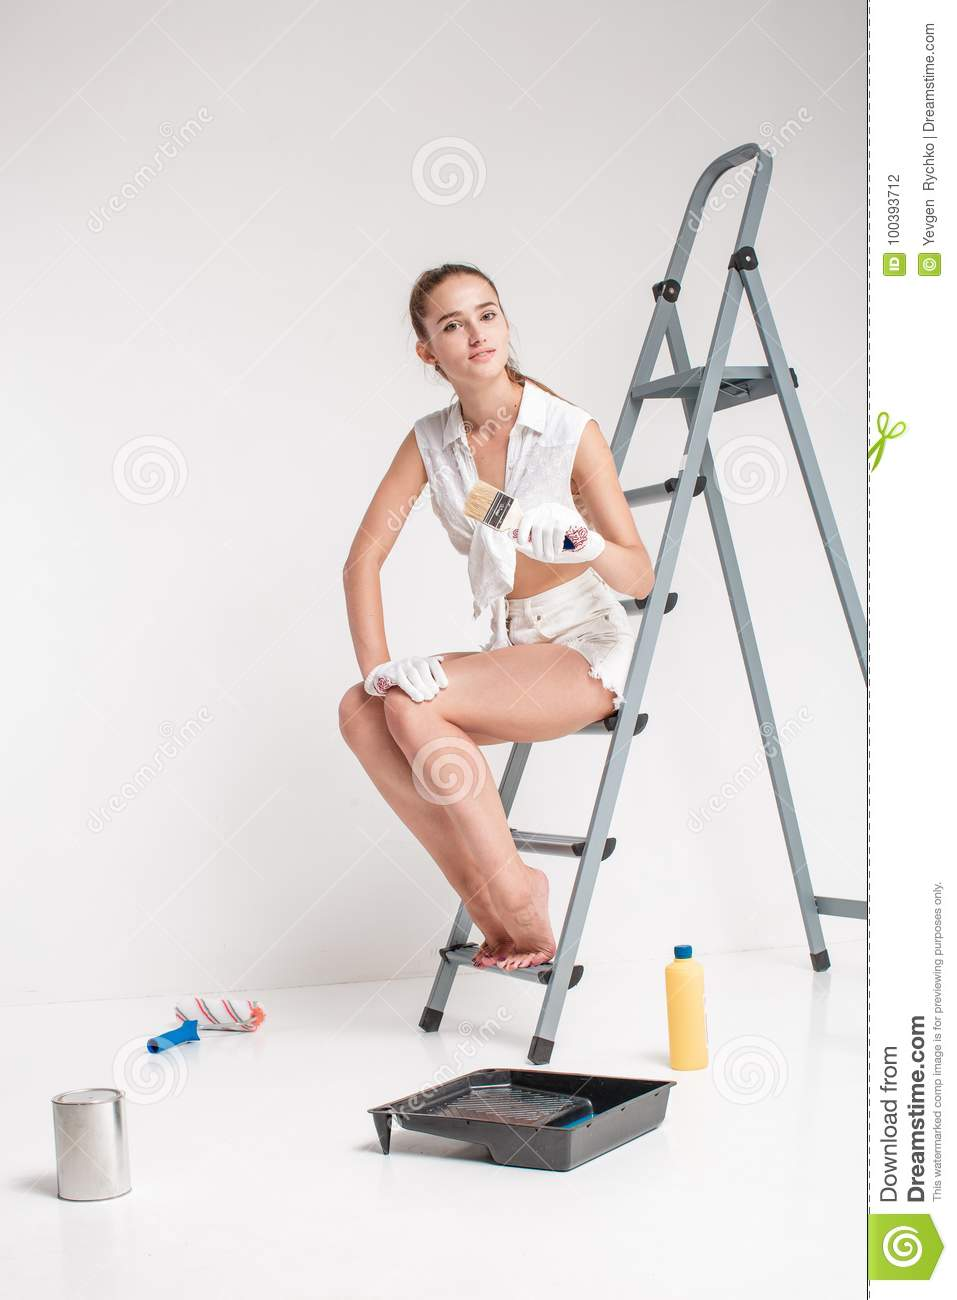 Woman Painting A Wall In House Stock Image - Image of